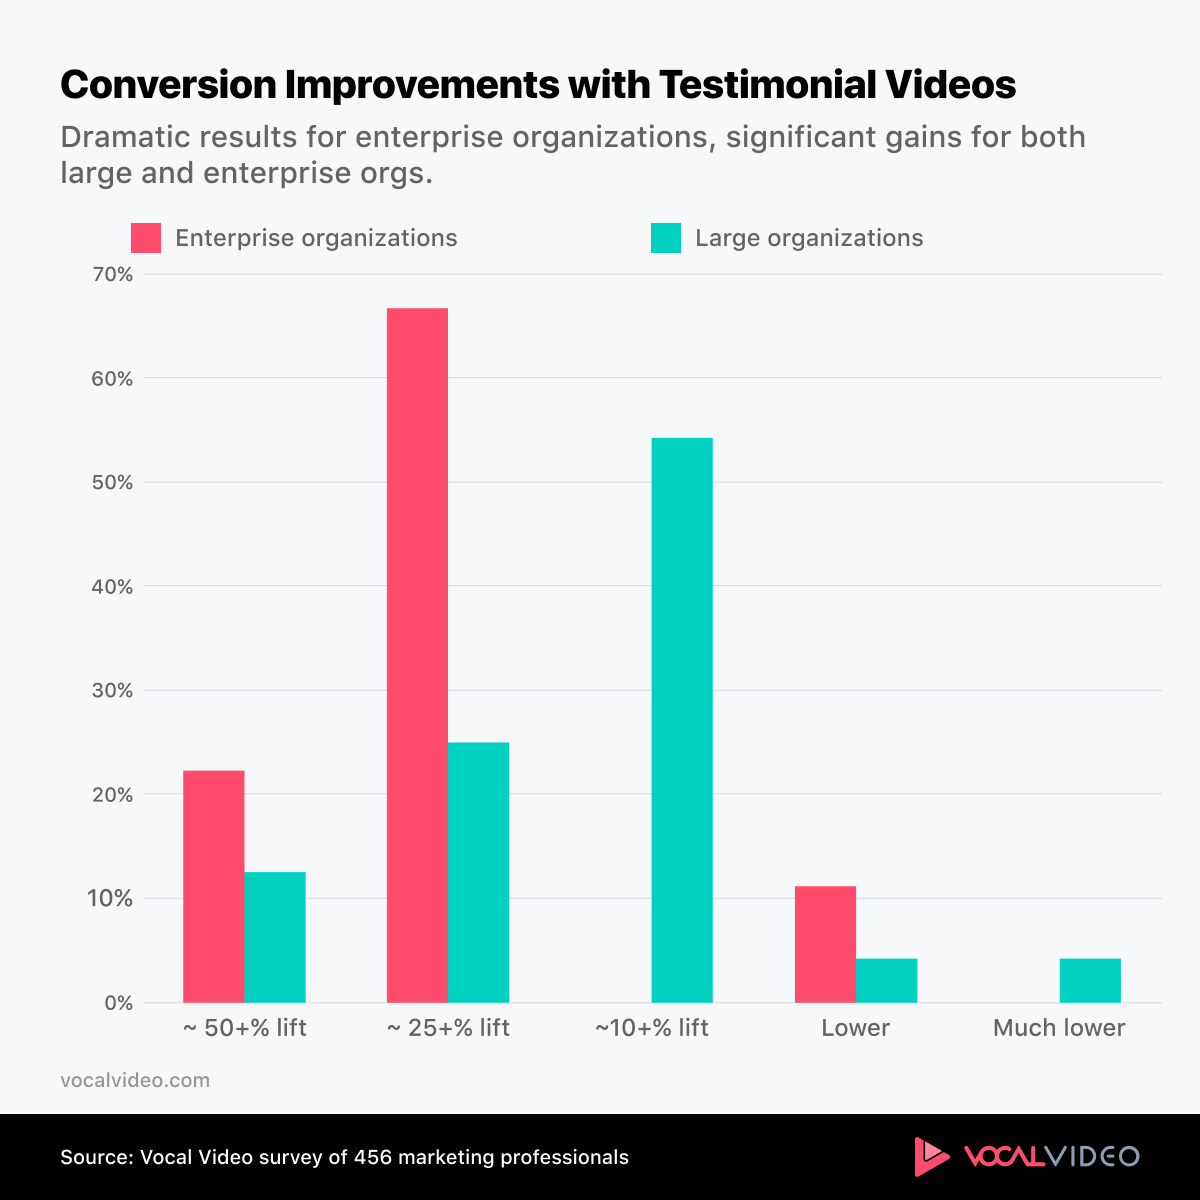 Chart showing strong conversion improvement with testimonial videos.